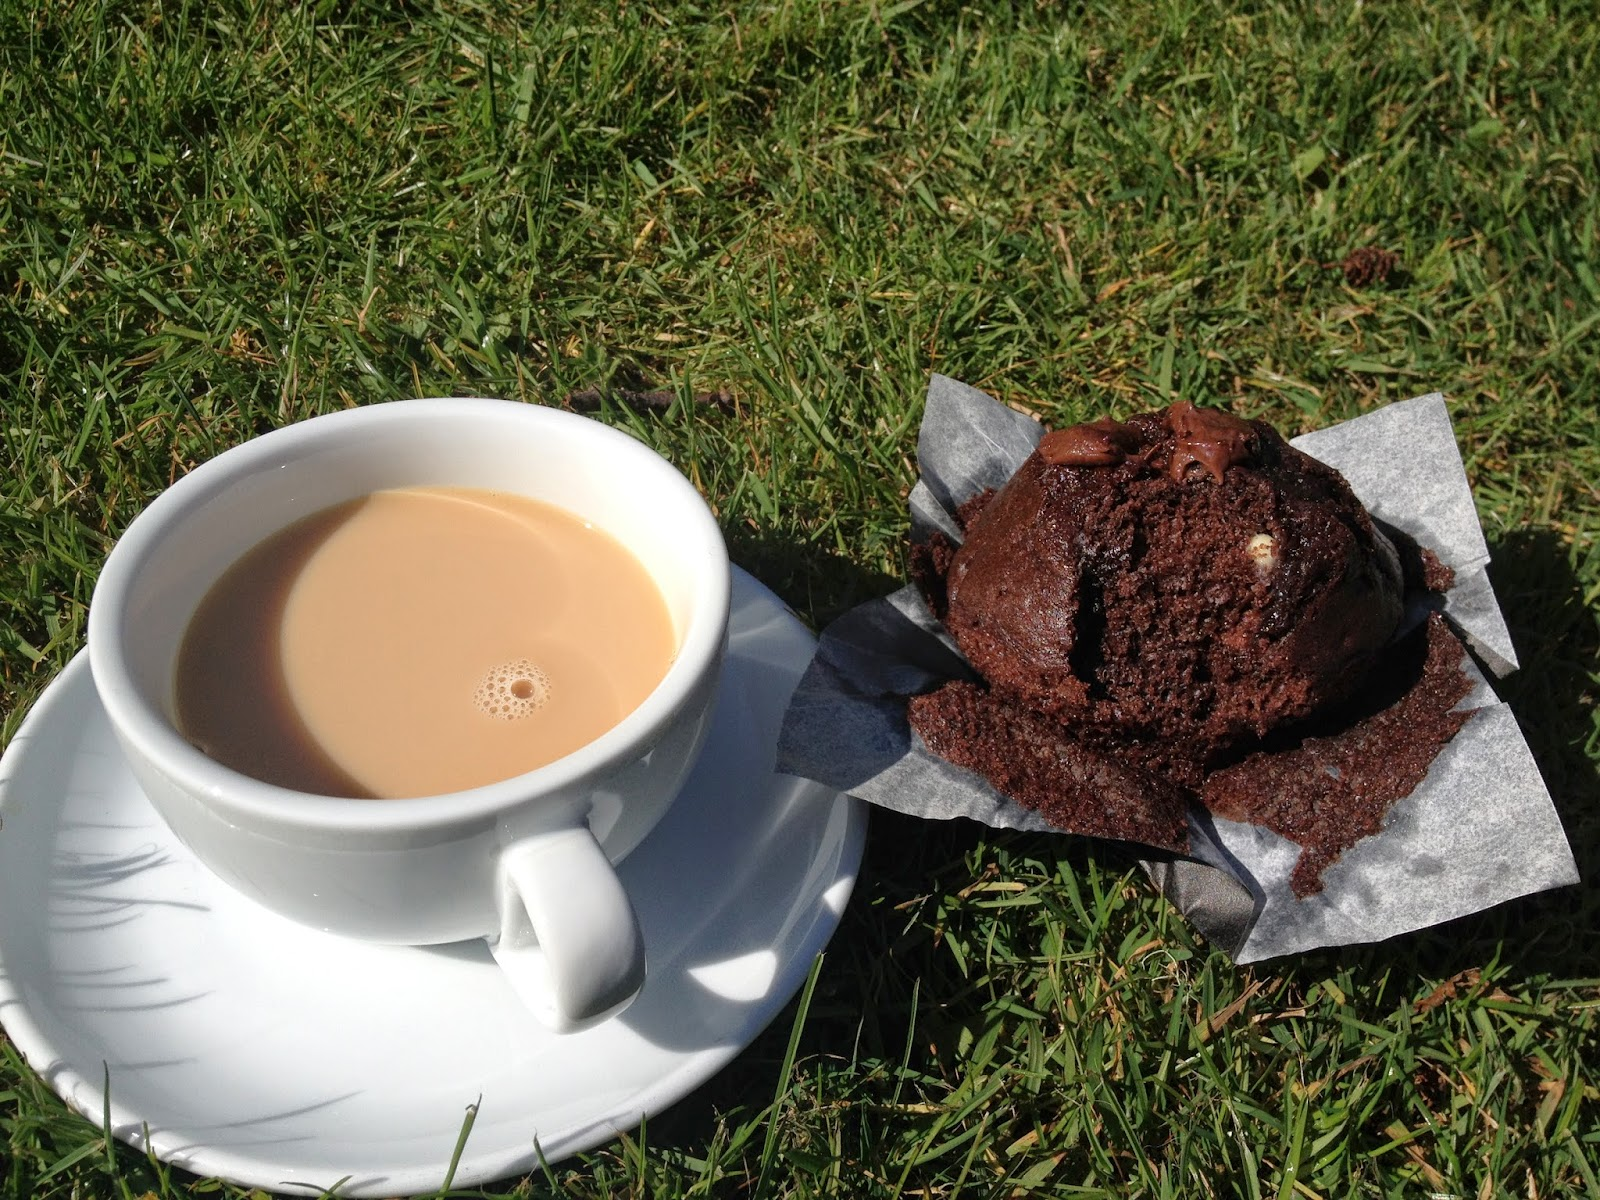 Tea and Chocolate Muffin